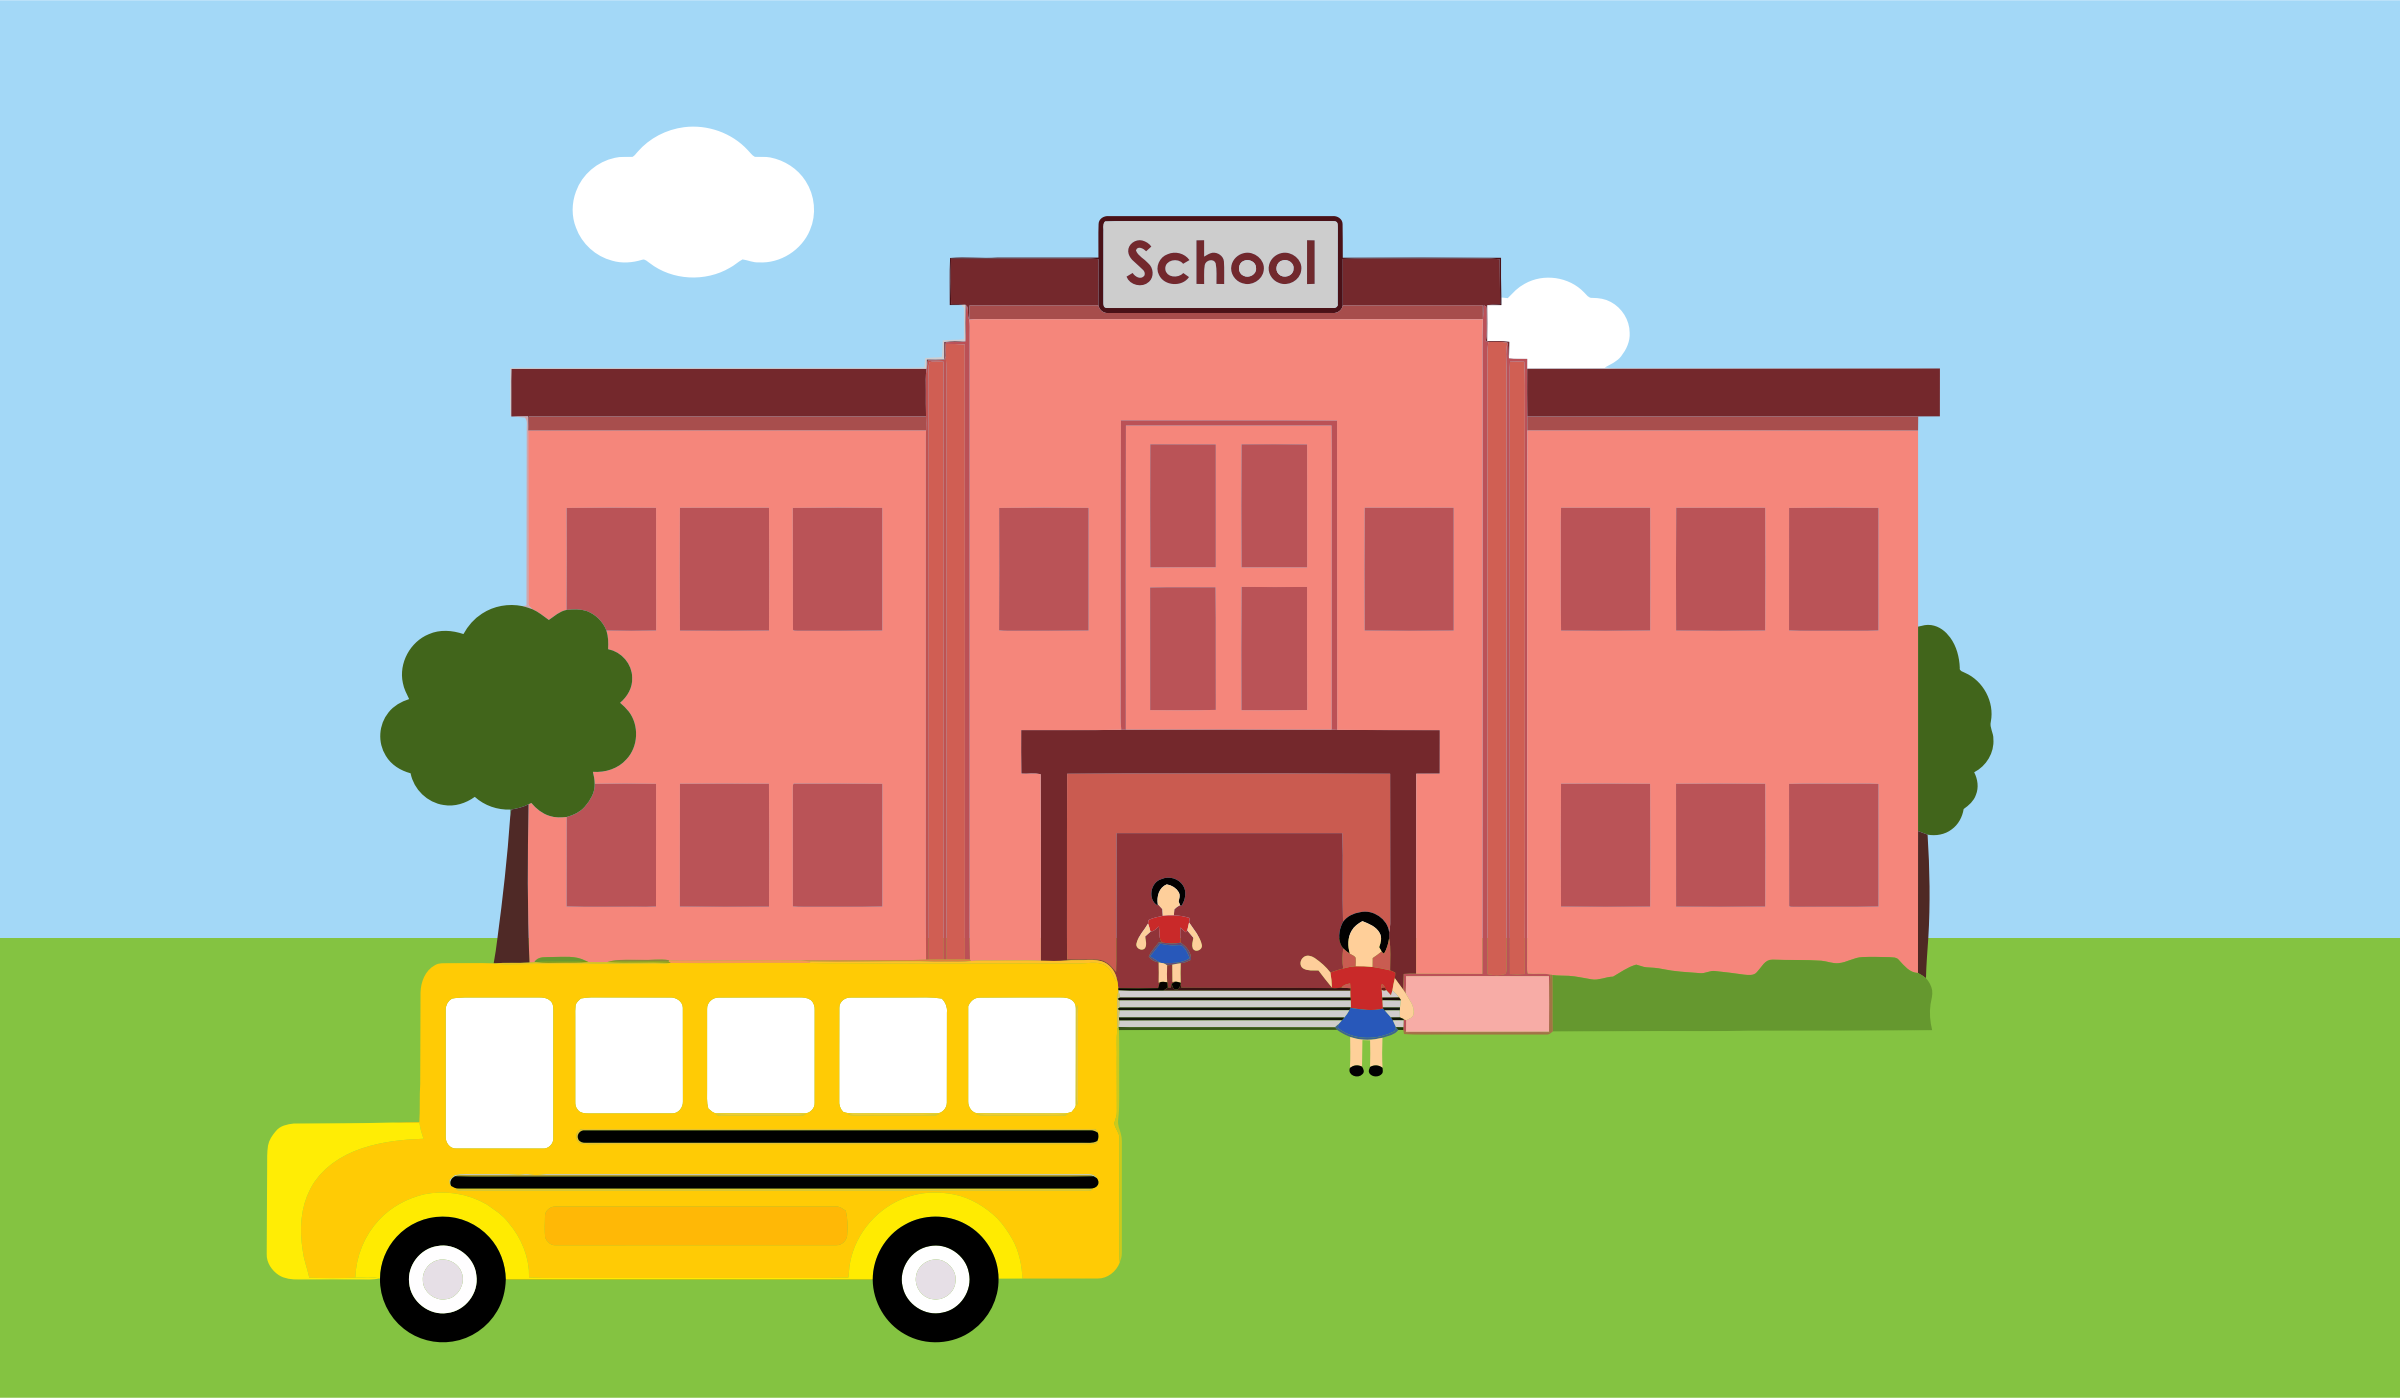 School building clipart png clip royalty free stock School building open clipart - ClipartFest clip royalty free stock